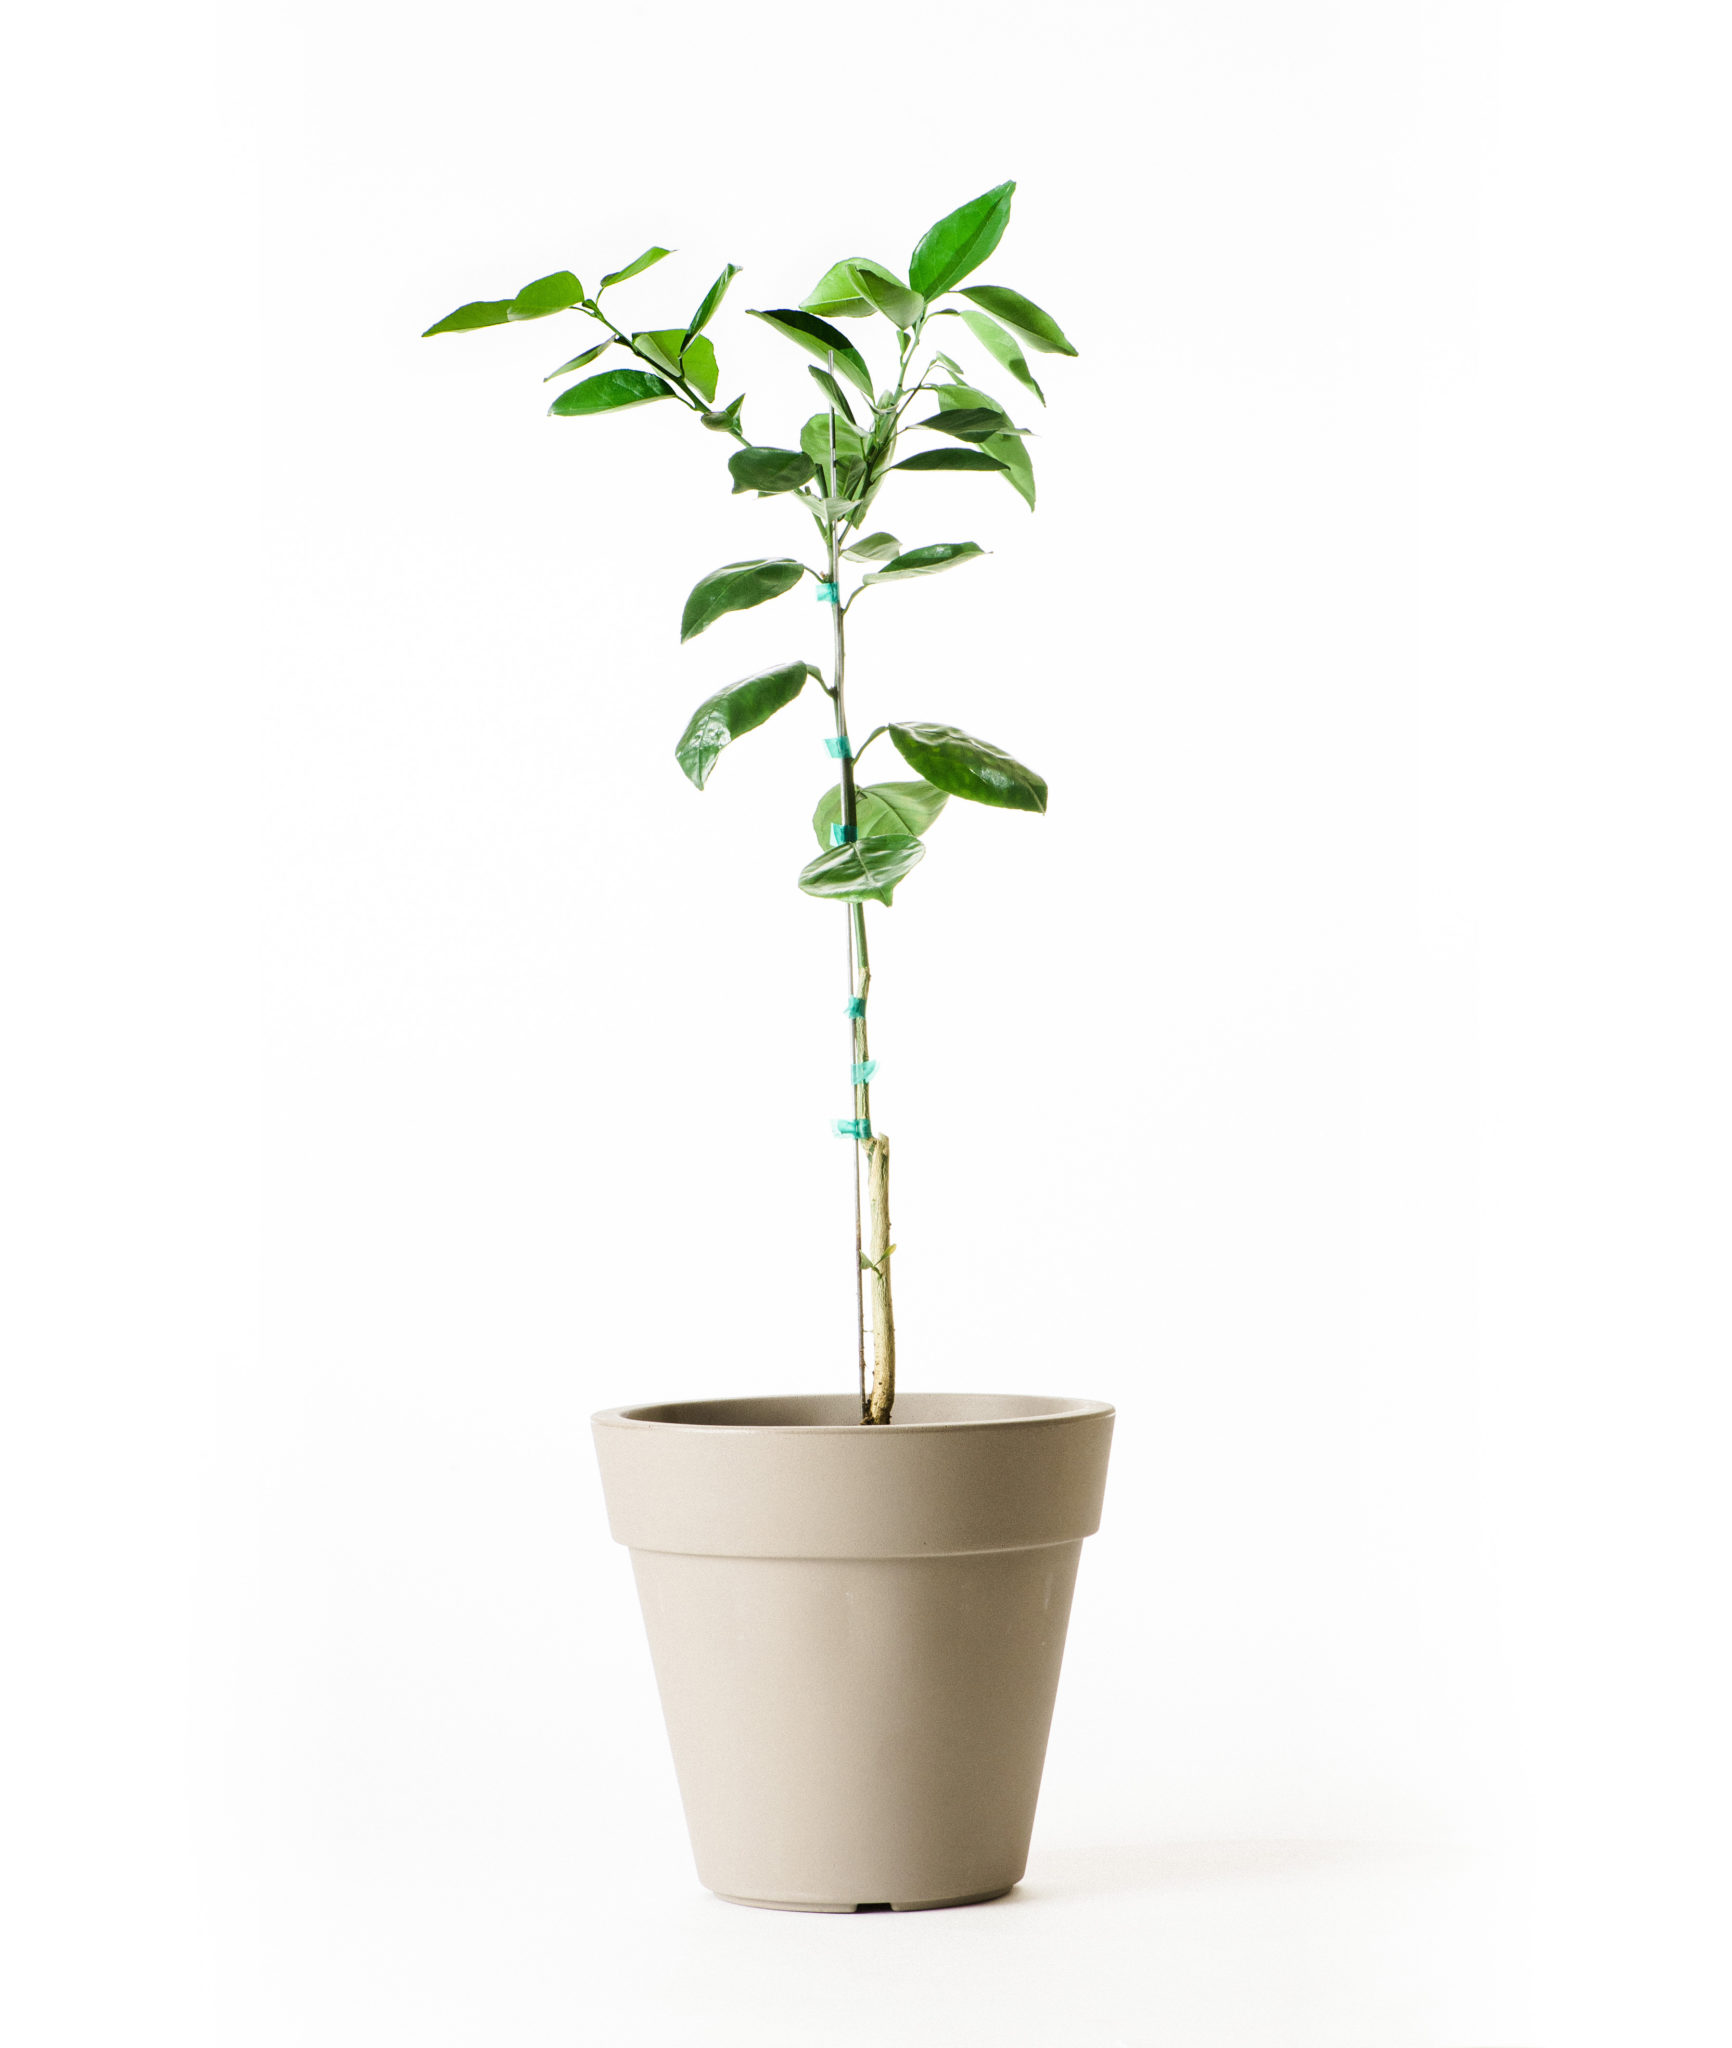 Dwarf Washington Navel Orange Tree (Age: 2 - 3 Years, Height: 2 - 3 FT)